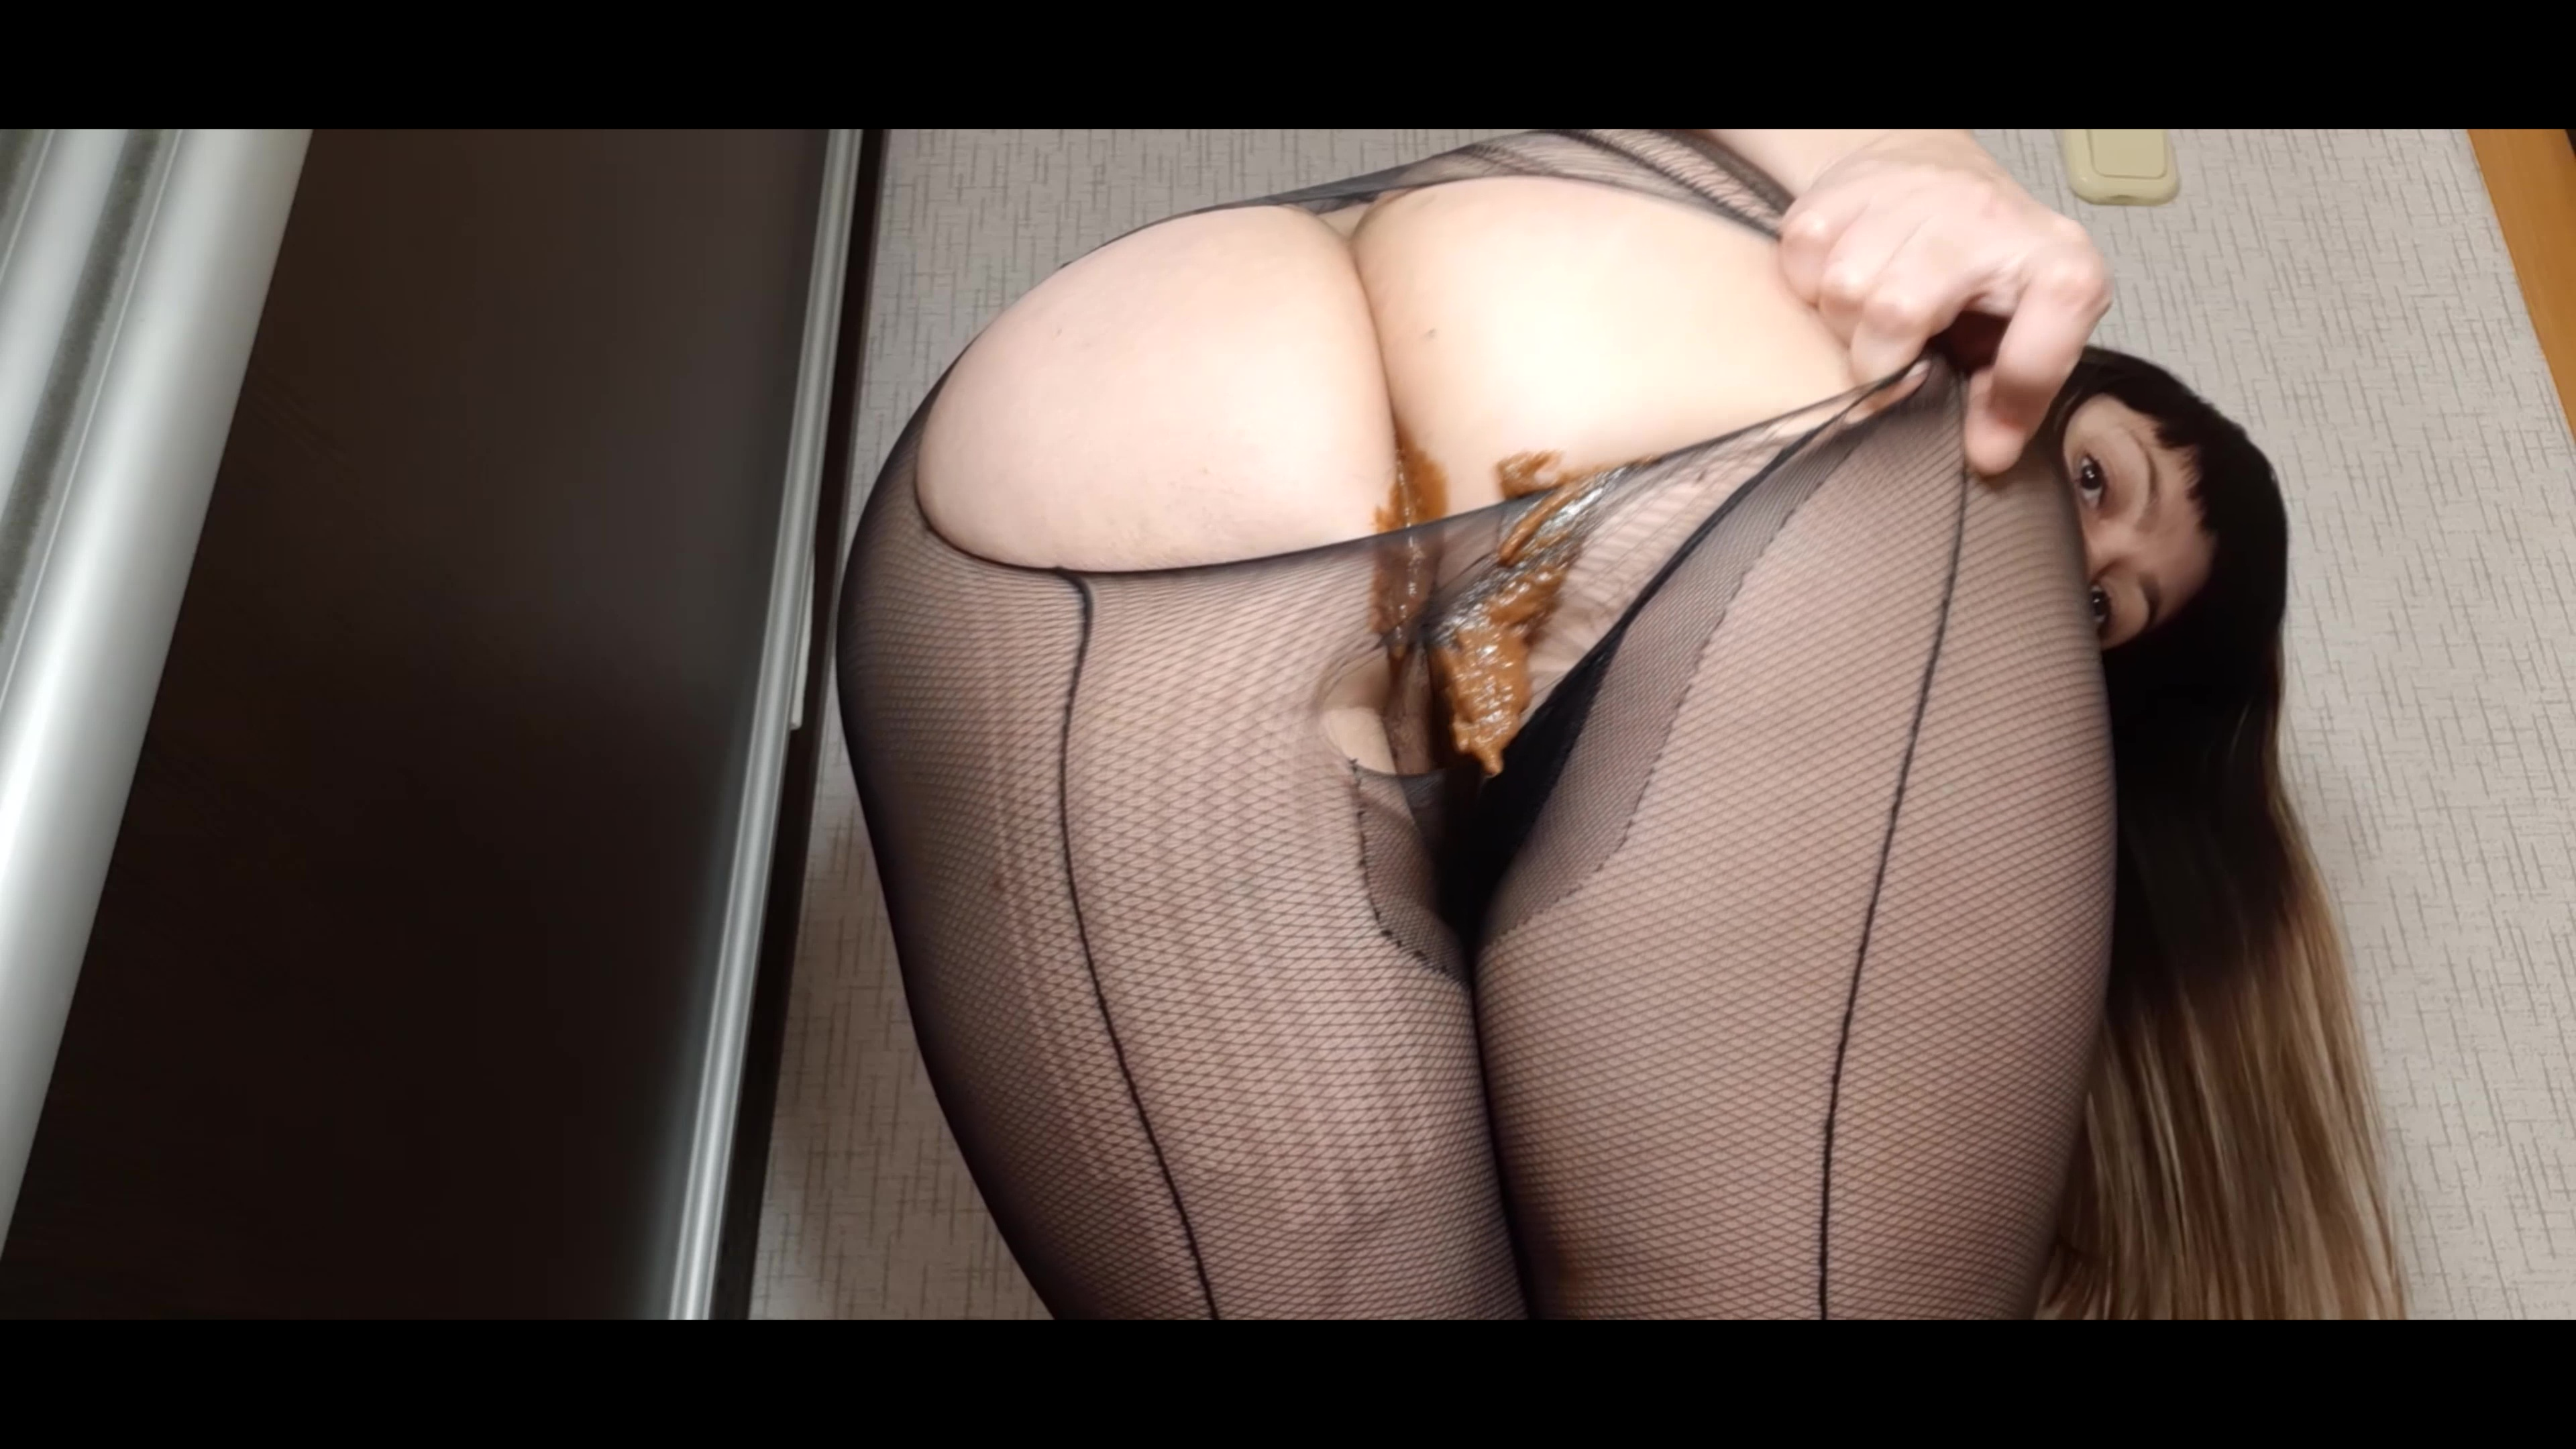 Dianascat - My torn tights are in the shit